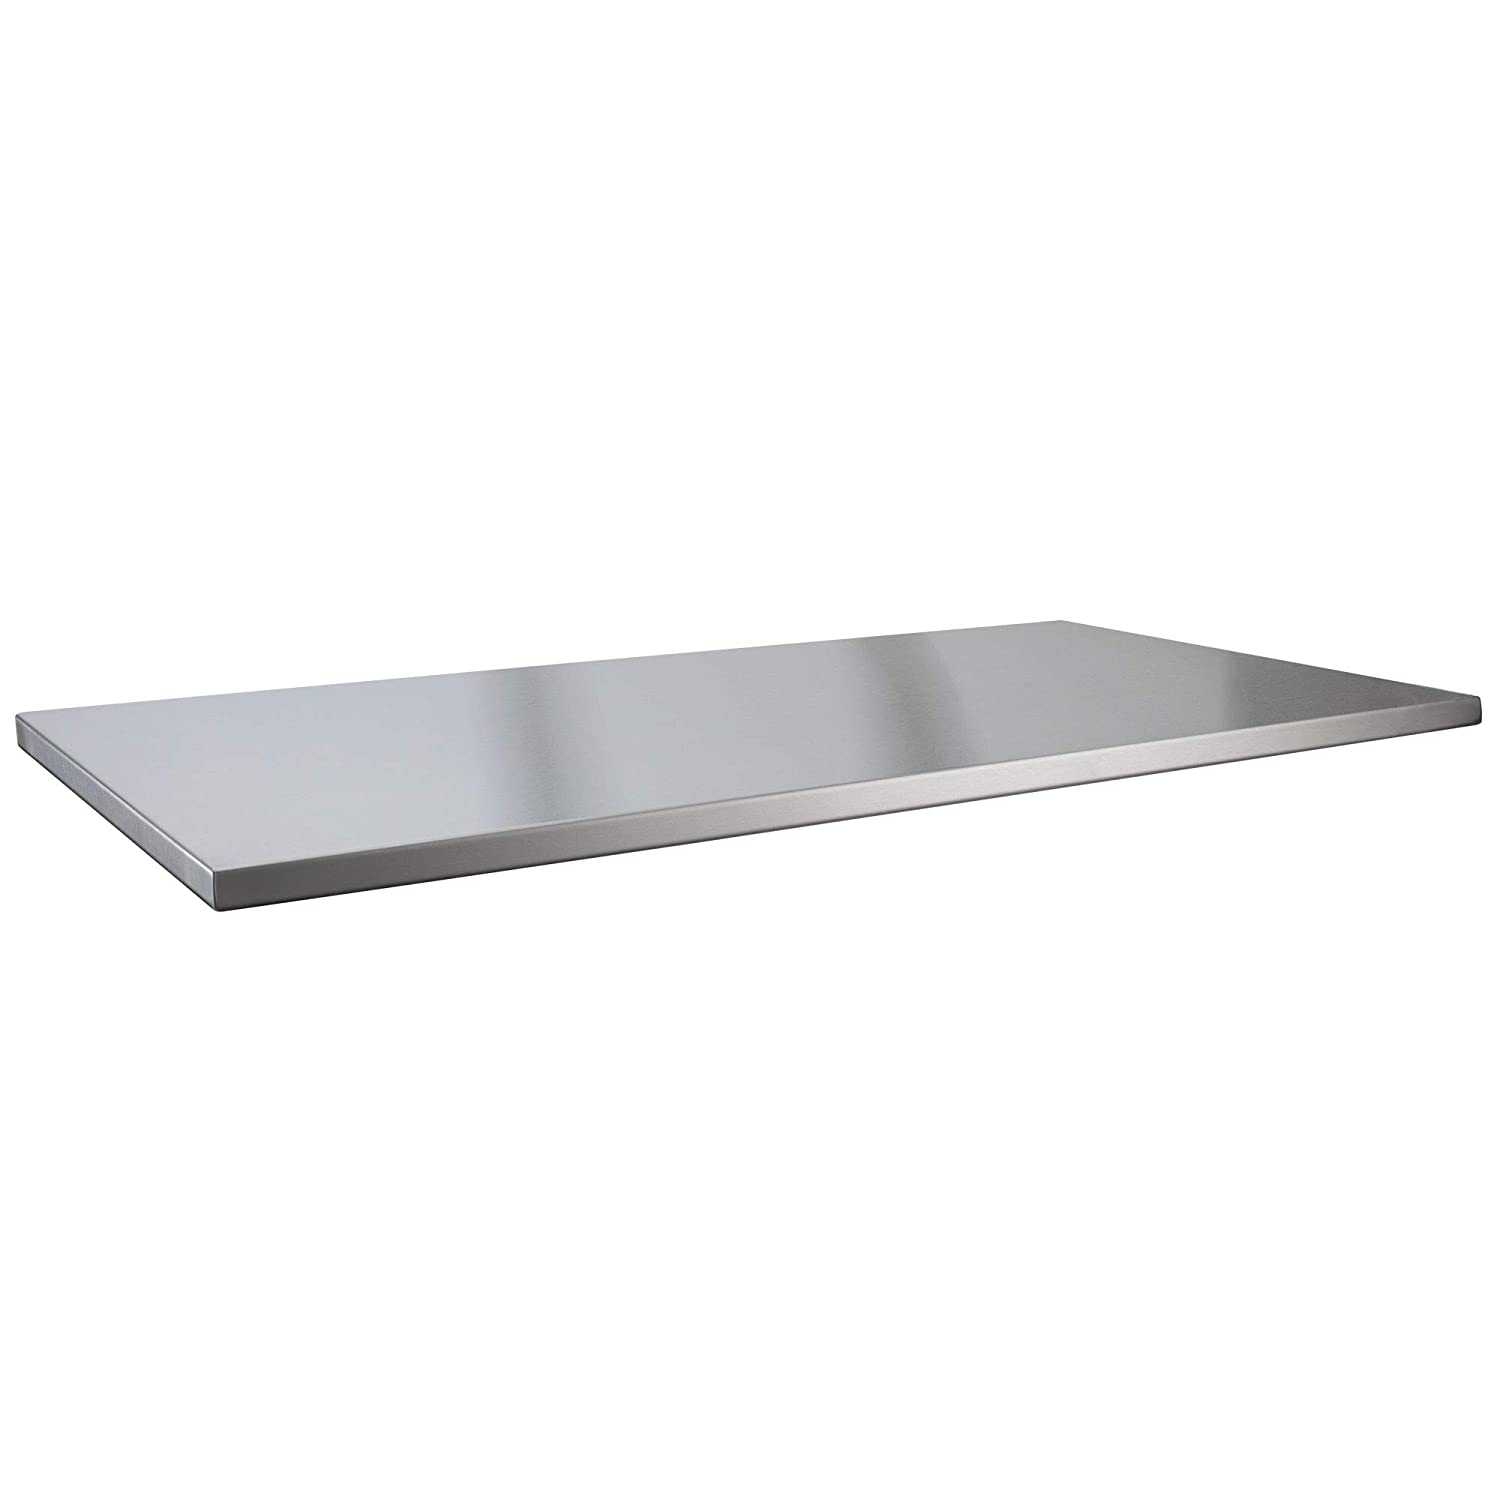 RecPro Concession Countertop | 304 Stainless Steel | 24